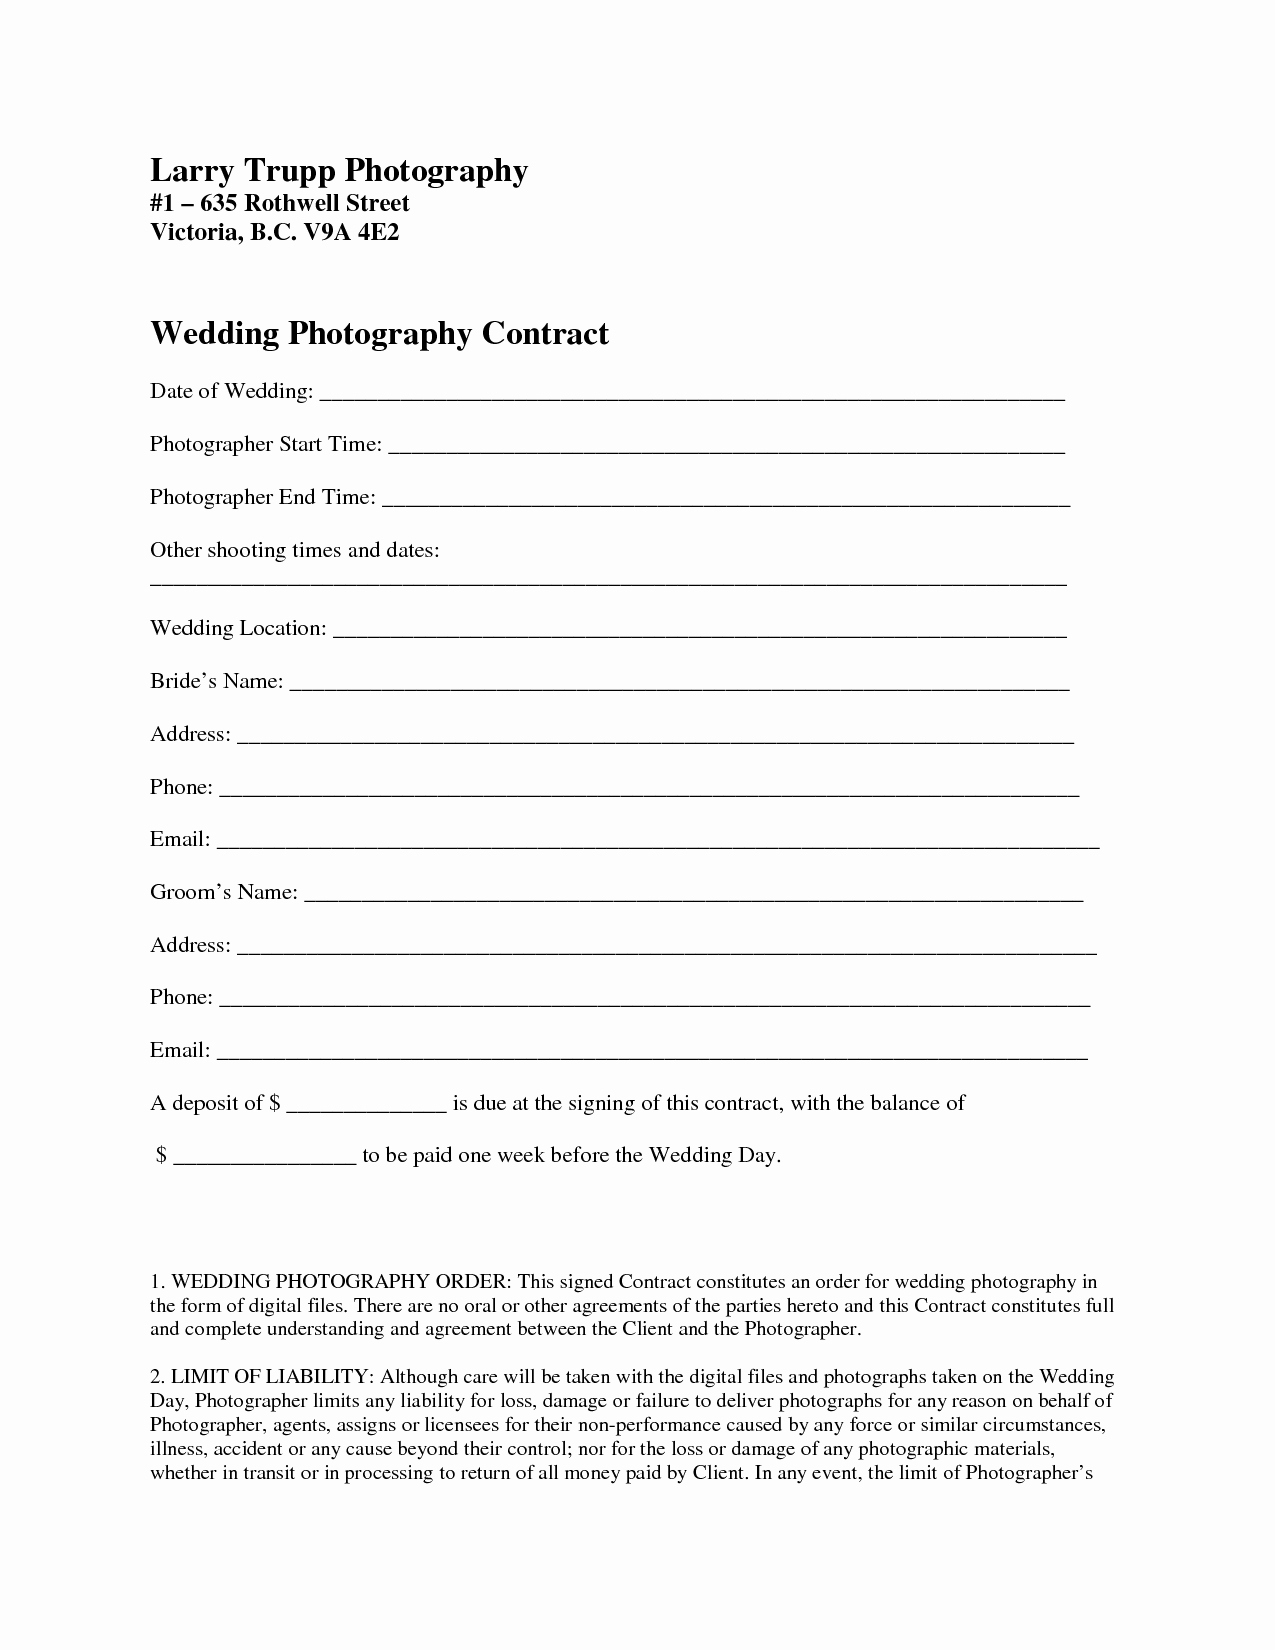 Wedding Photography Contract Pdf Awesome Graphy Contract Template